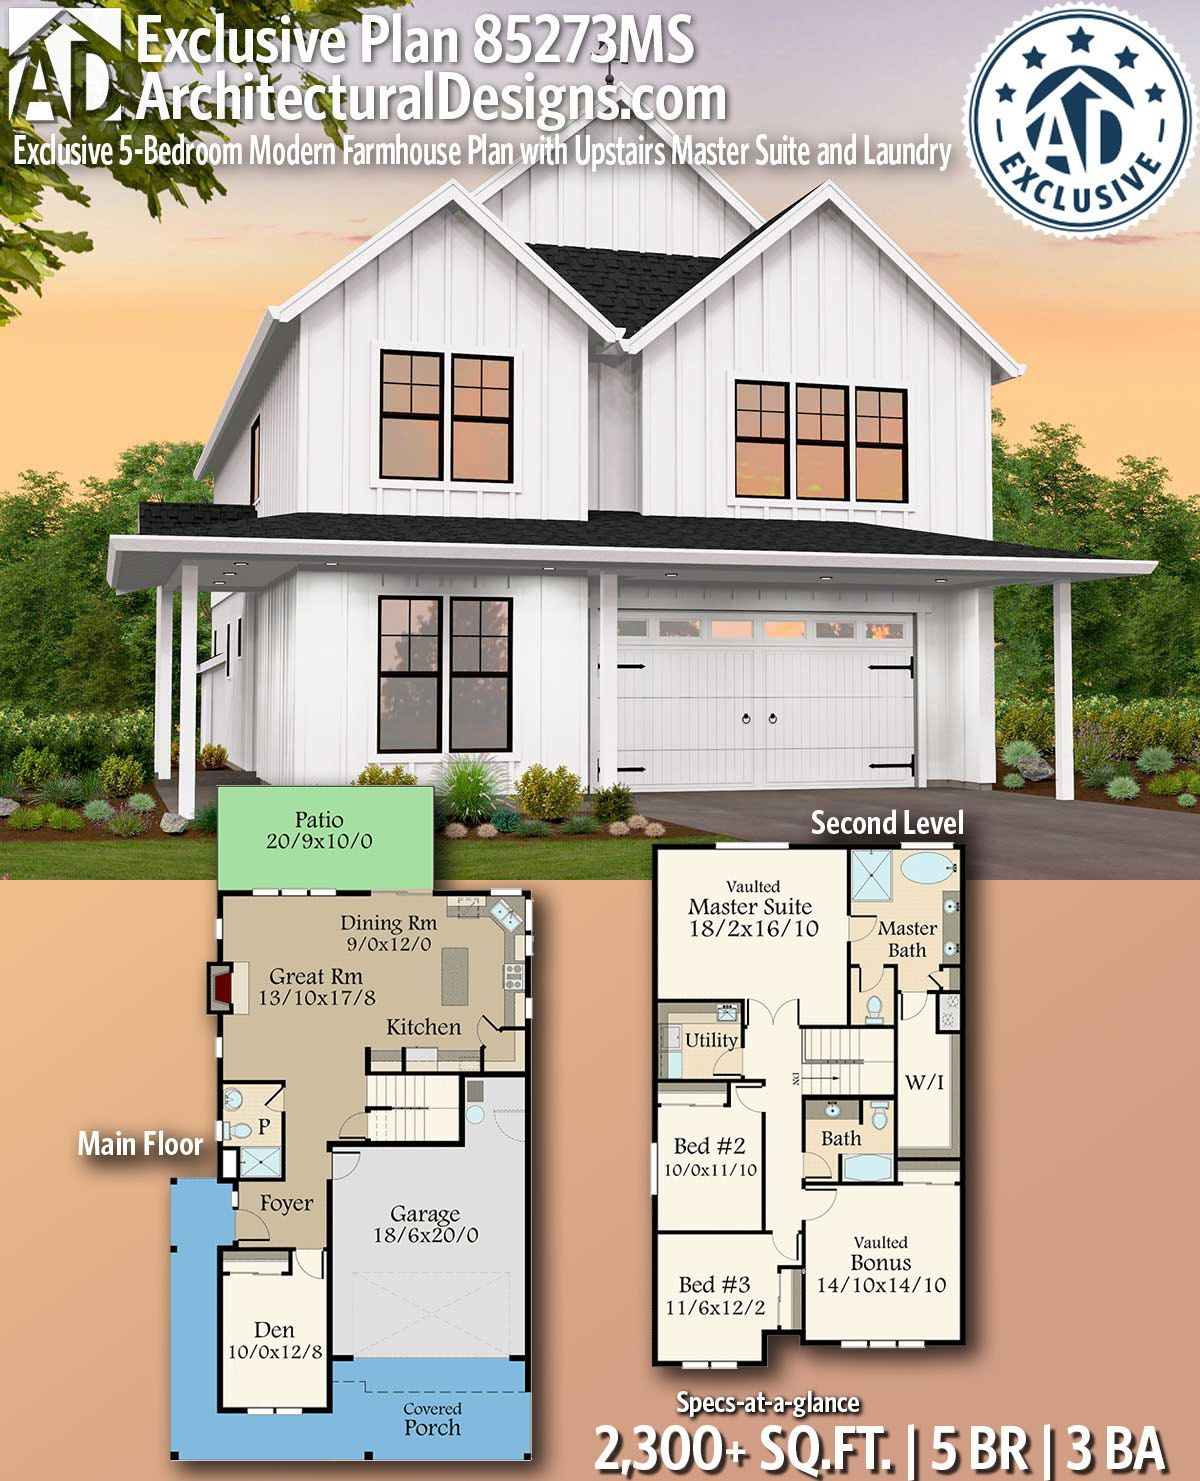 Plan 85273ms Exclusive 5 Bedroom Modern Farmhouse Plan With Upstairs Master Suite And Laundry Modern Farmhouse Plans Farmhouse Plans Modern Farmhouse Exterior